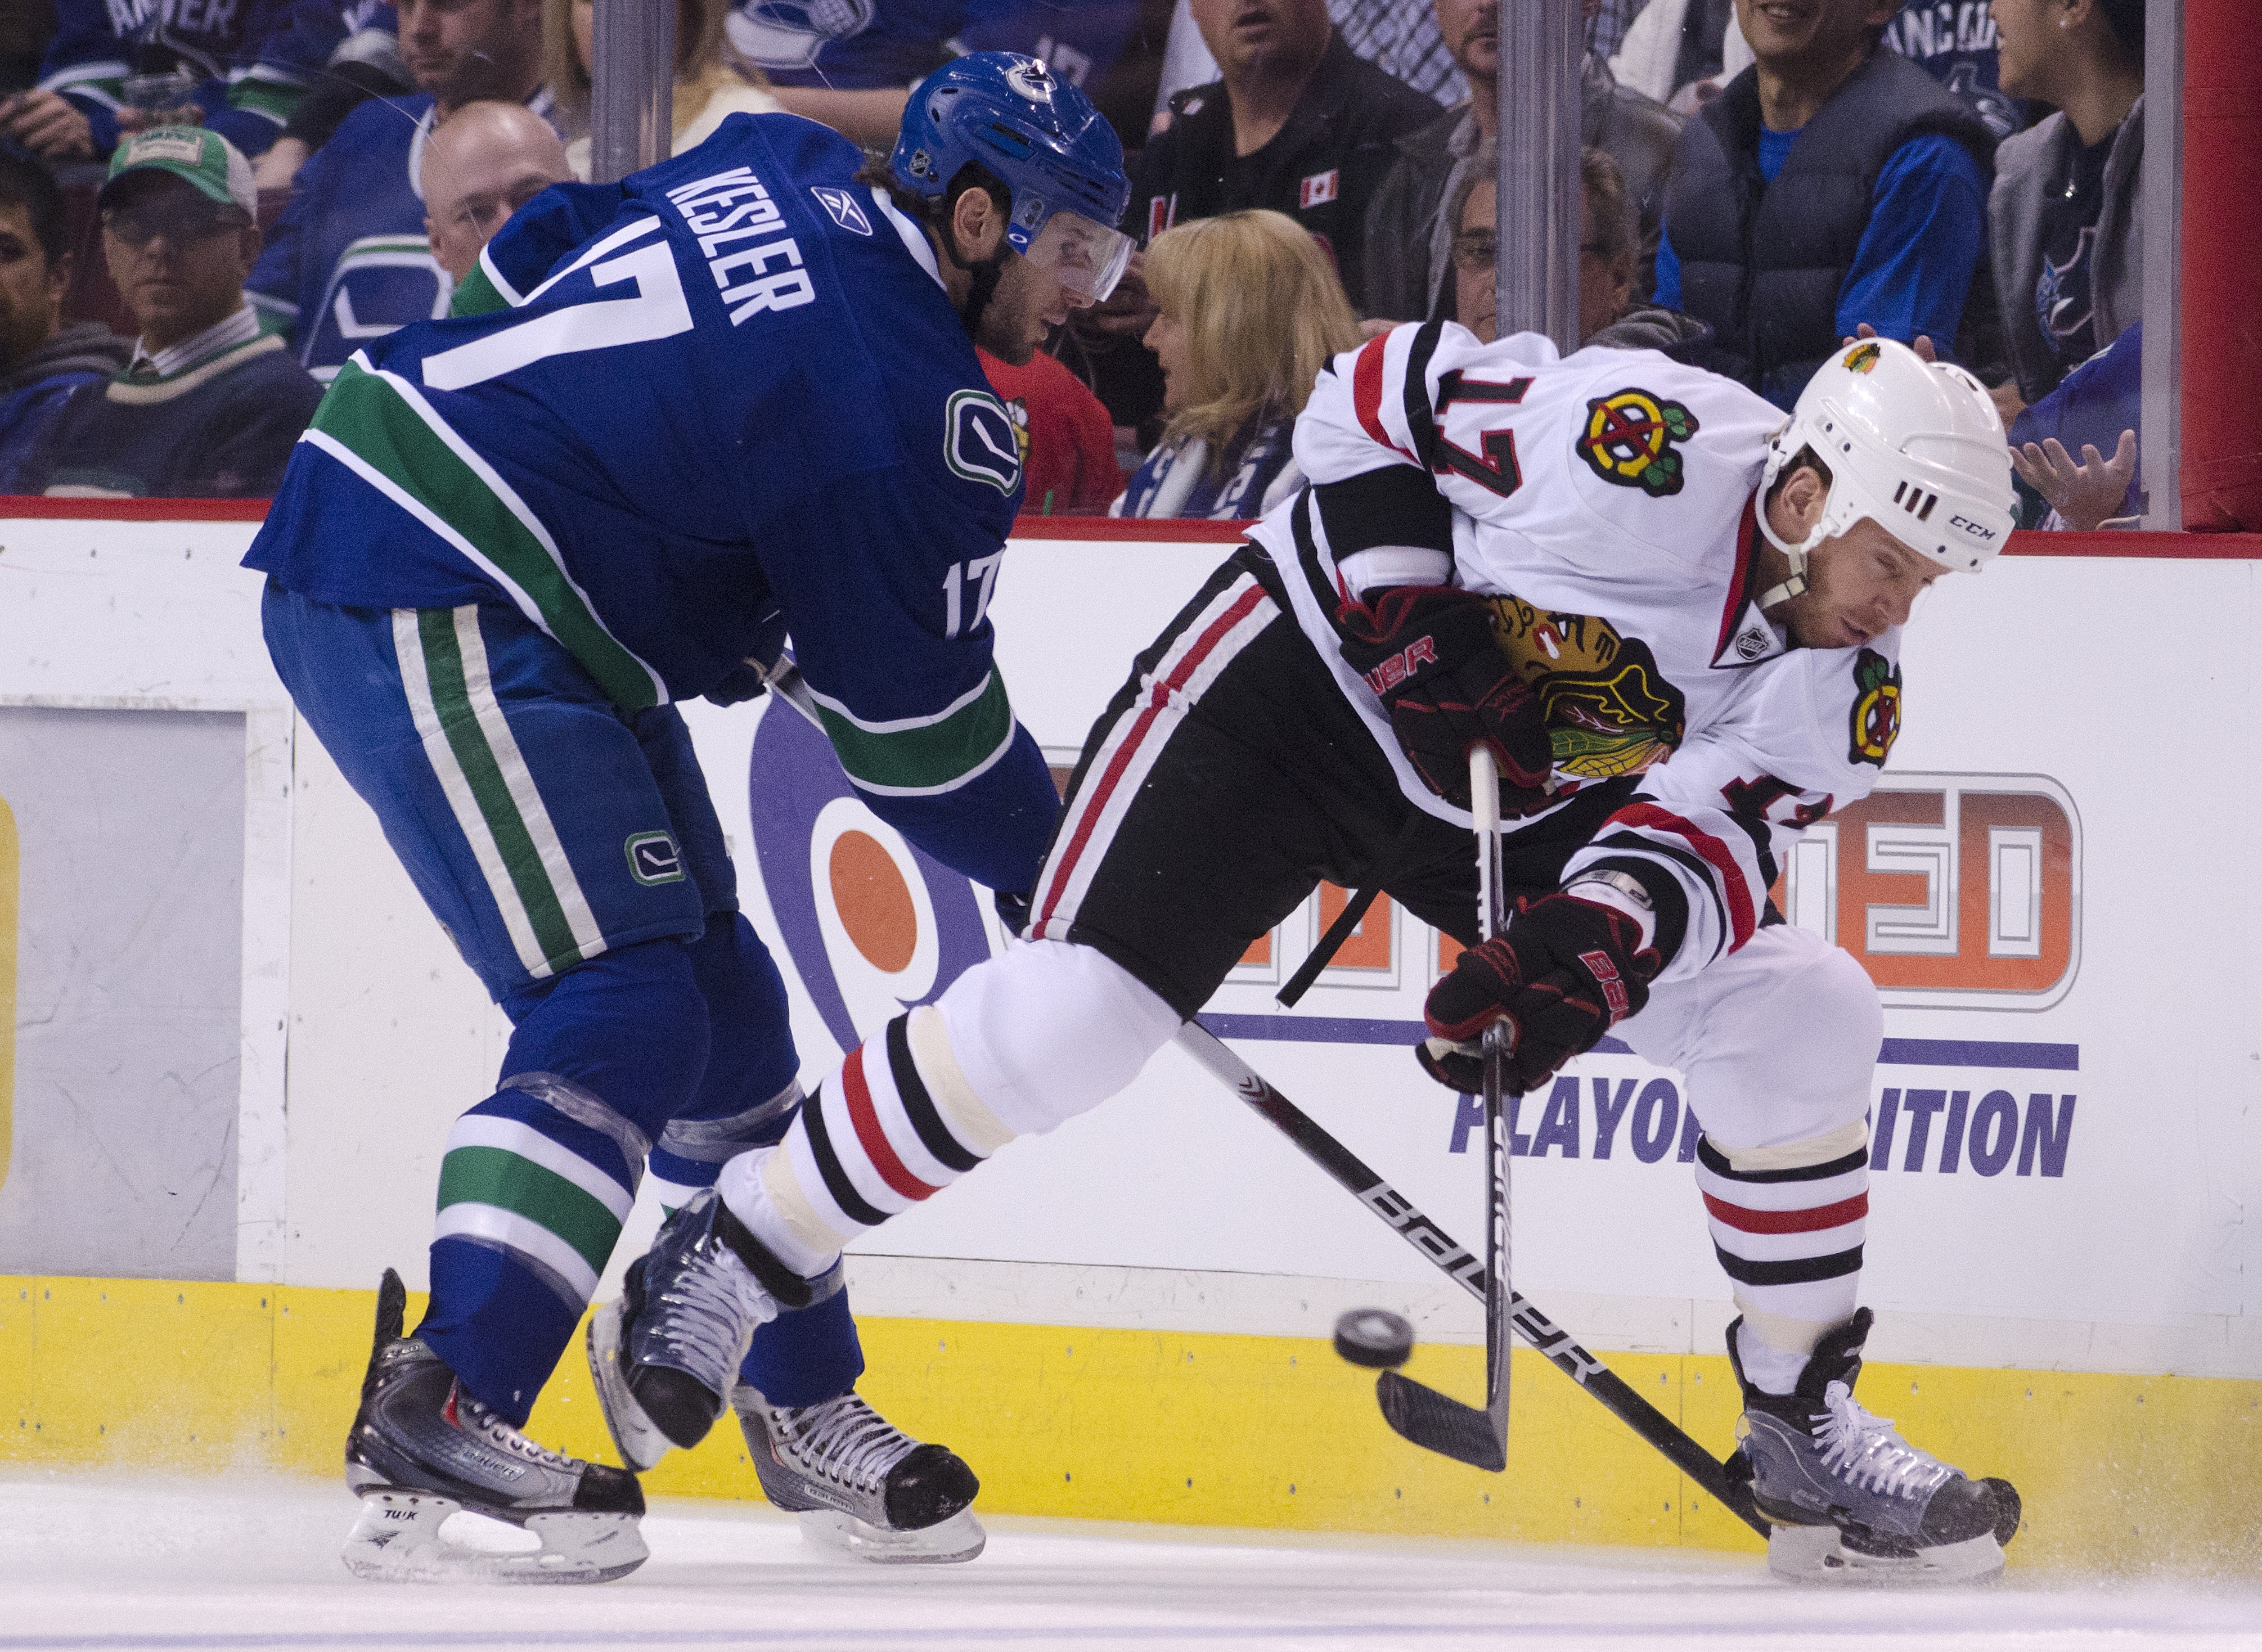 VANCOUVER, CANADA - APRIL 21: Ryan Kesler #17 of the Vancouver Canucks checks Ryan Johnson #17 of the Chicago Blackhawks as he clear the puck during the first period in Game Five of the Western Conference Quarterfinals during the 2011 NHL Stanley Cup Play